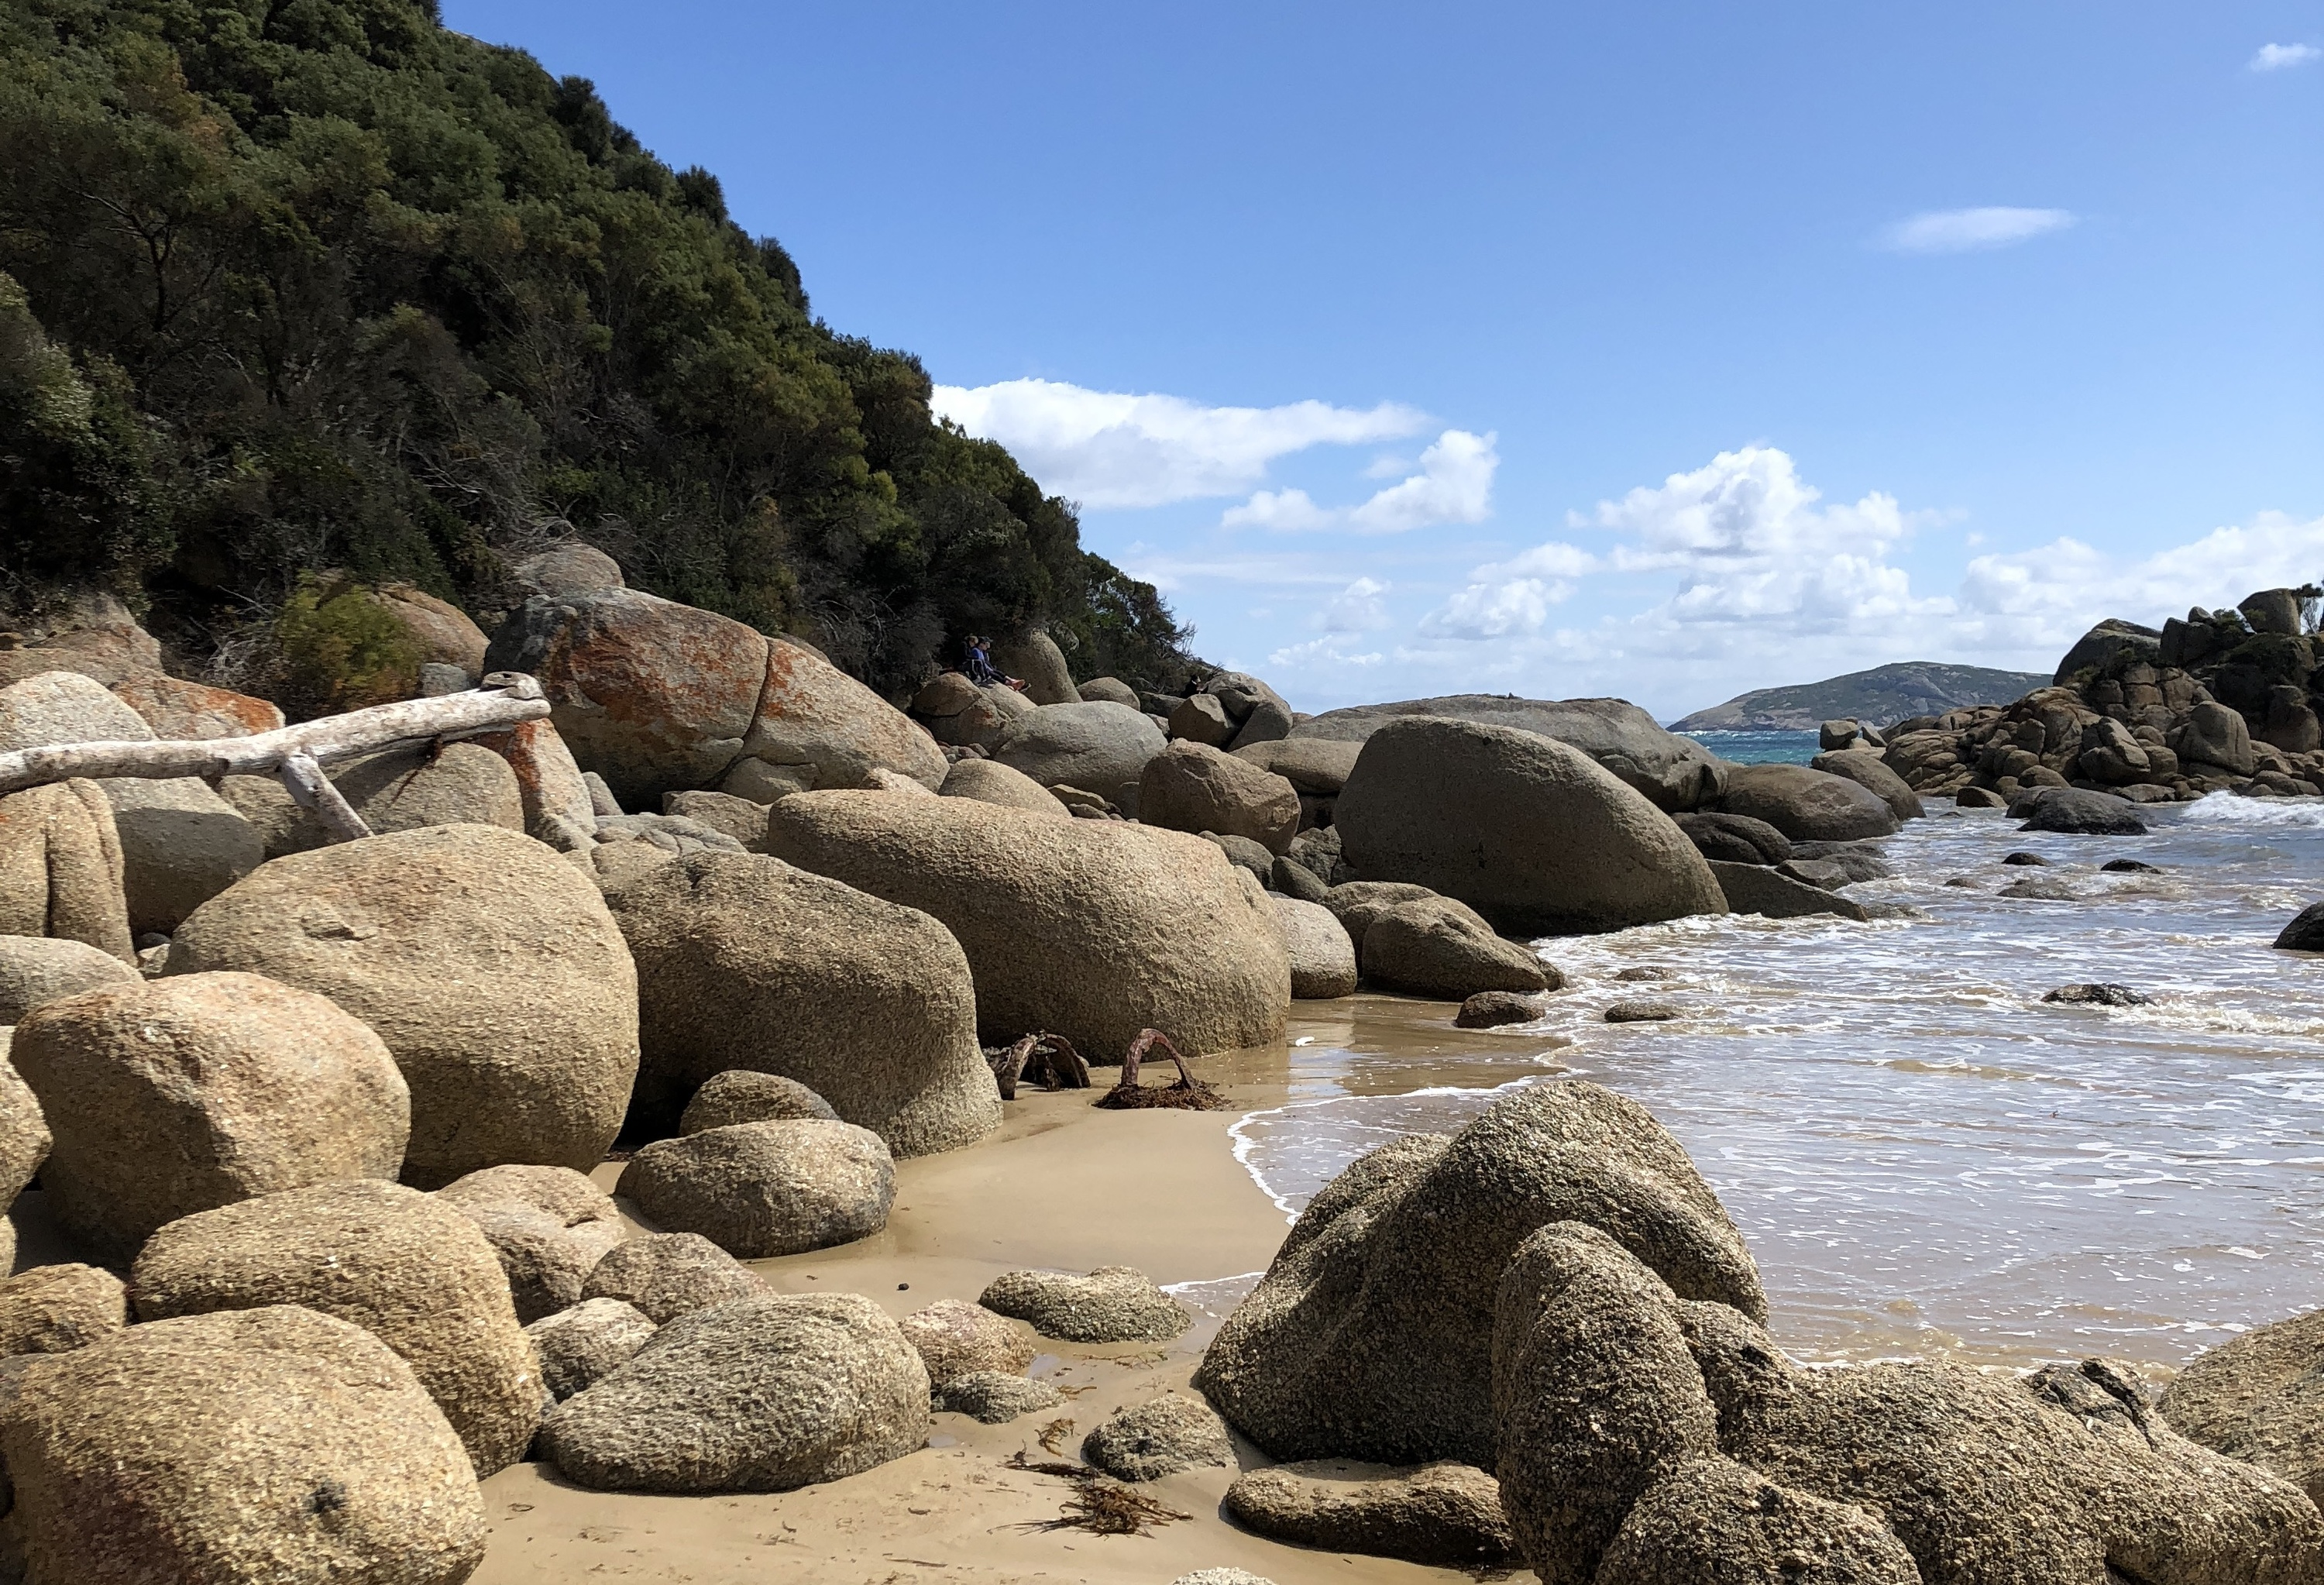 Beach at Fairy Cove in Wilsons Promontory